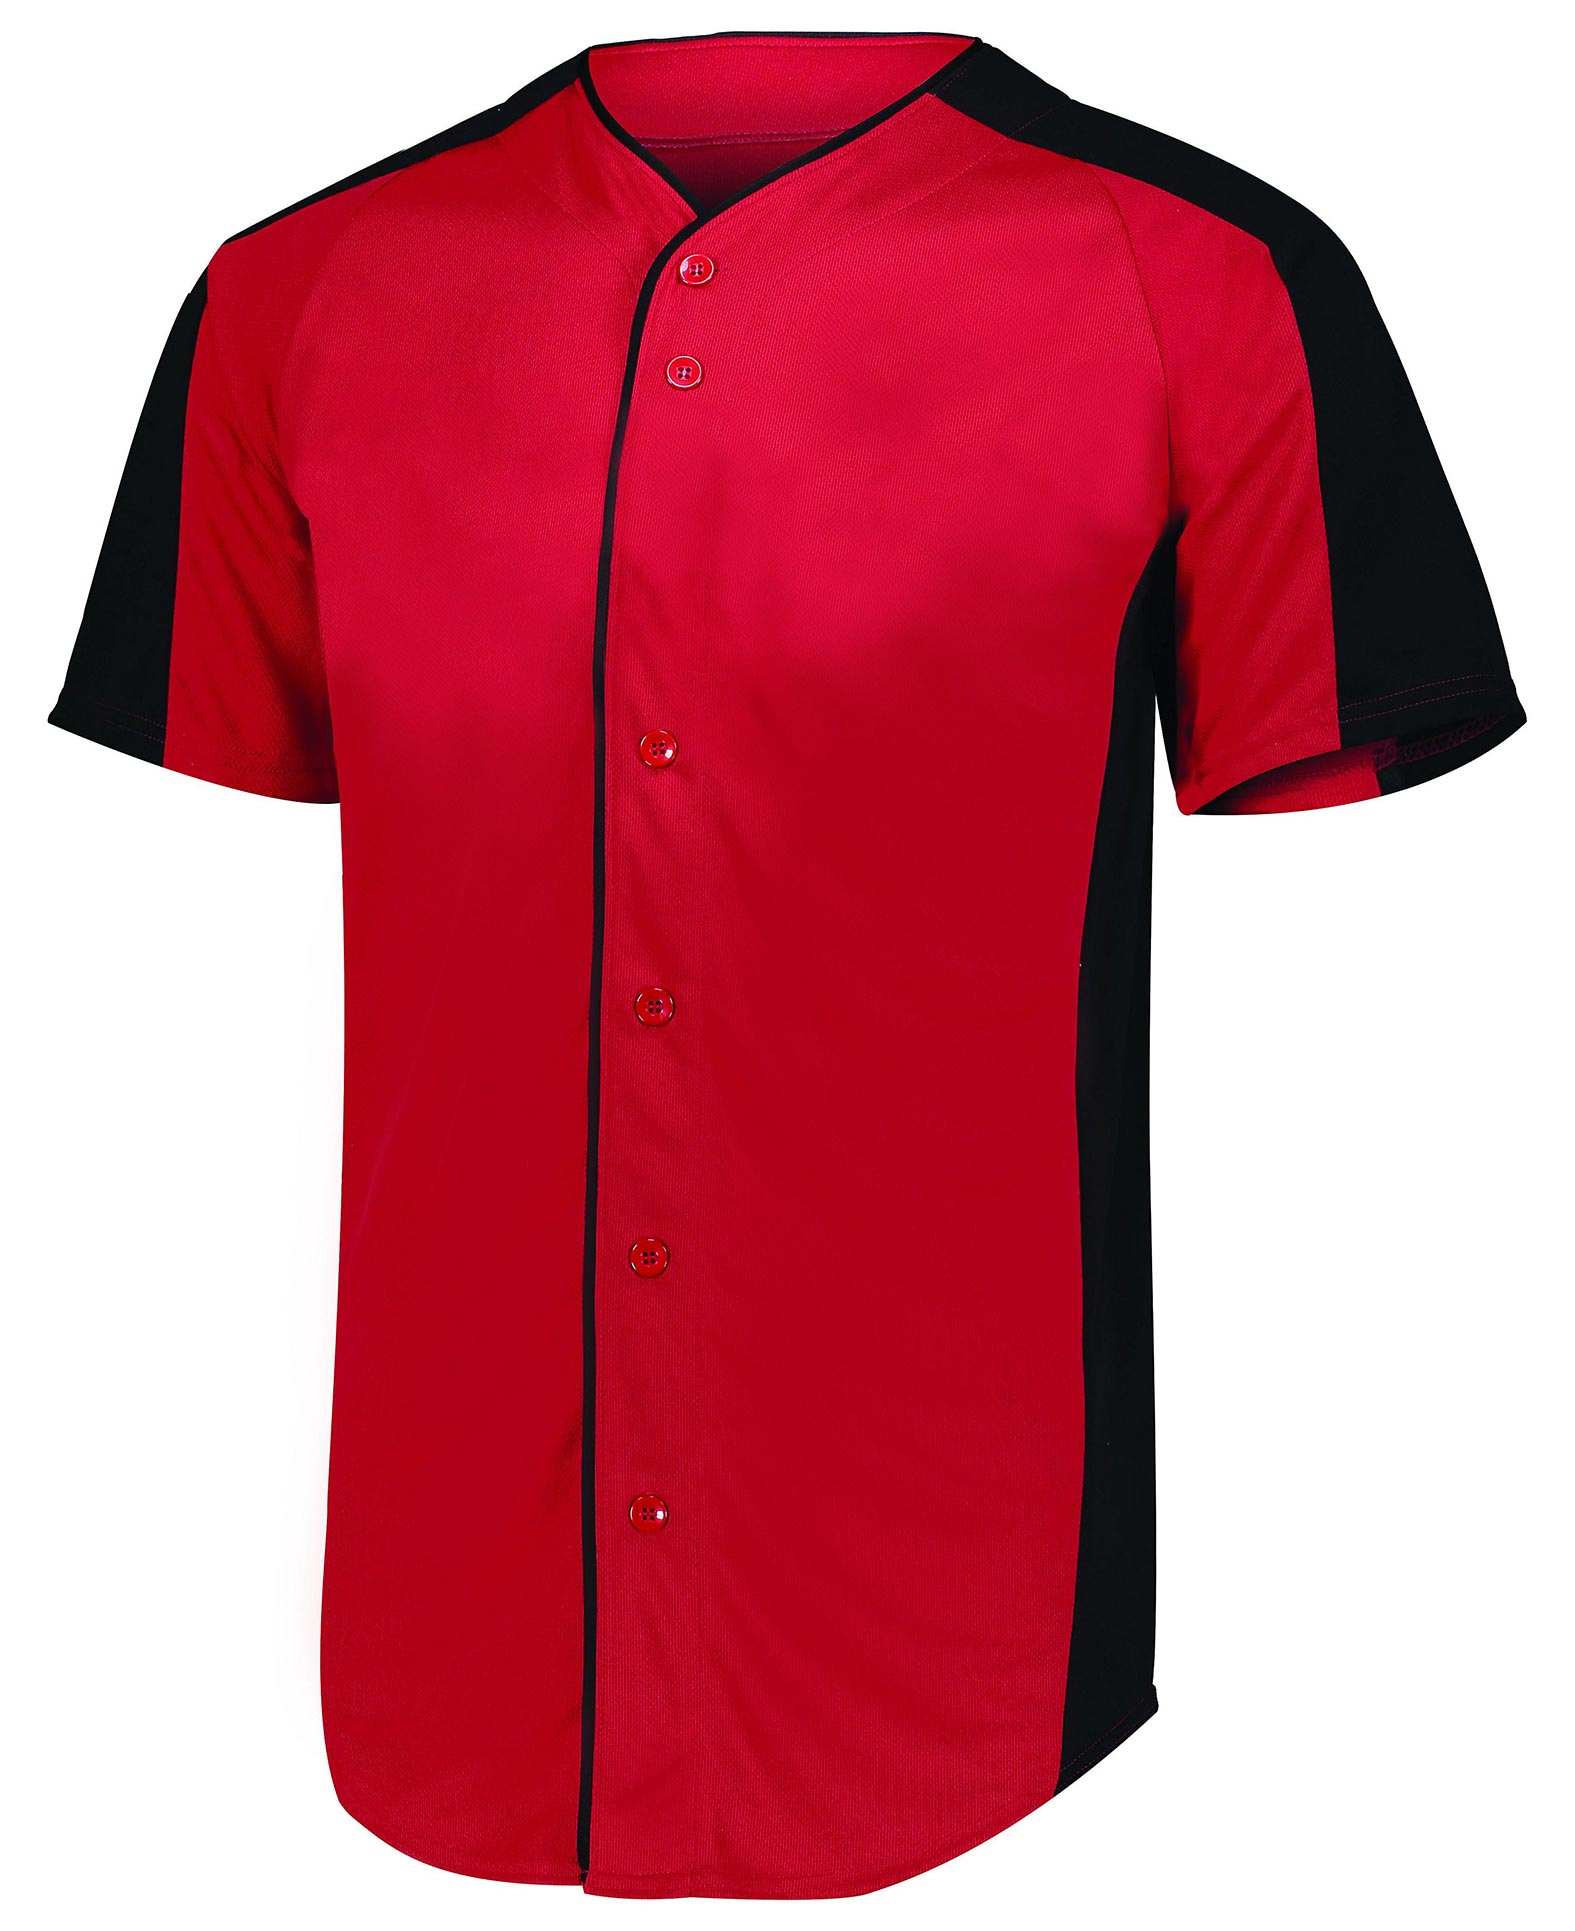 Mens Full Button Baseball Jersey